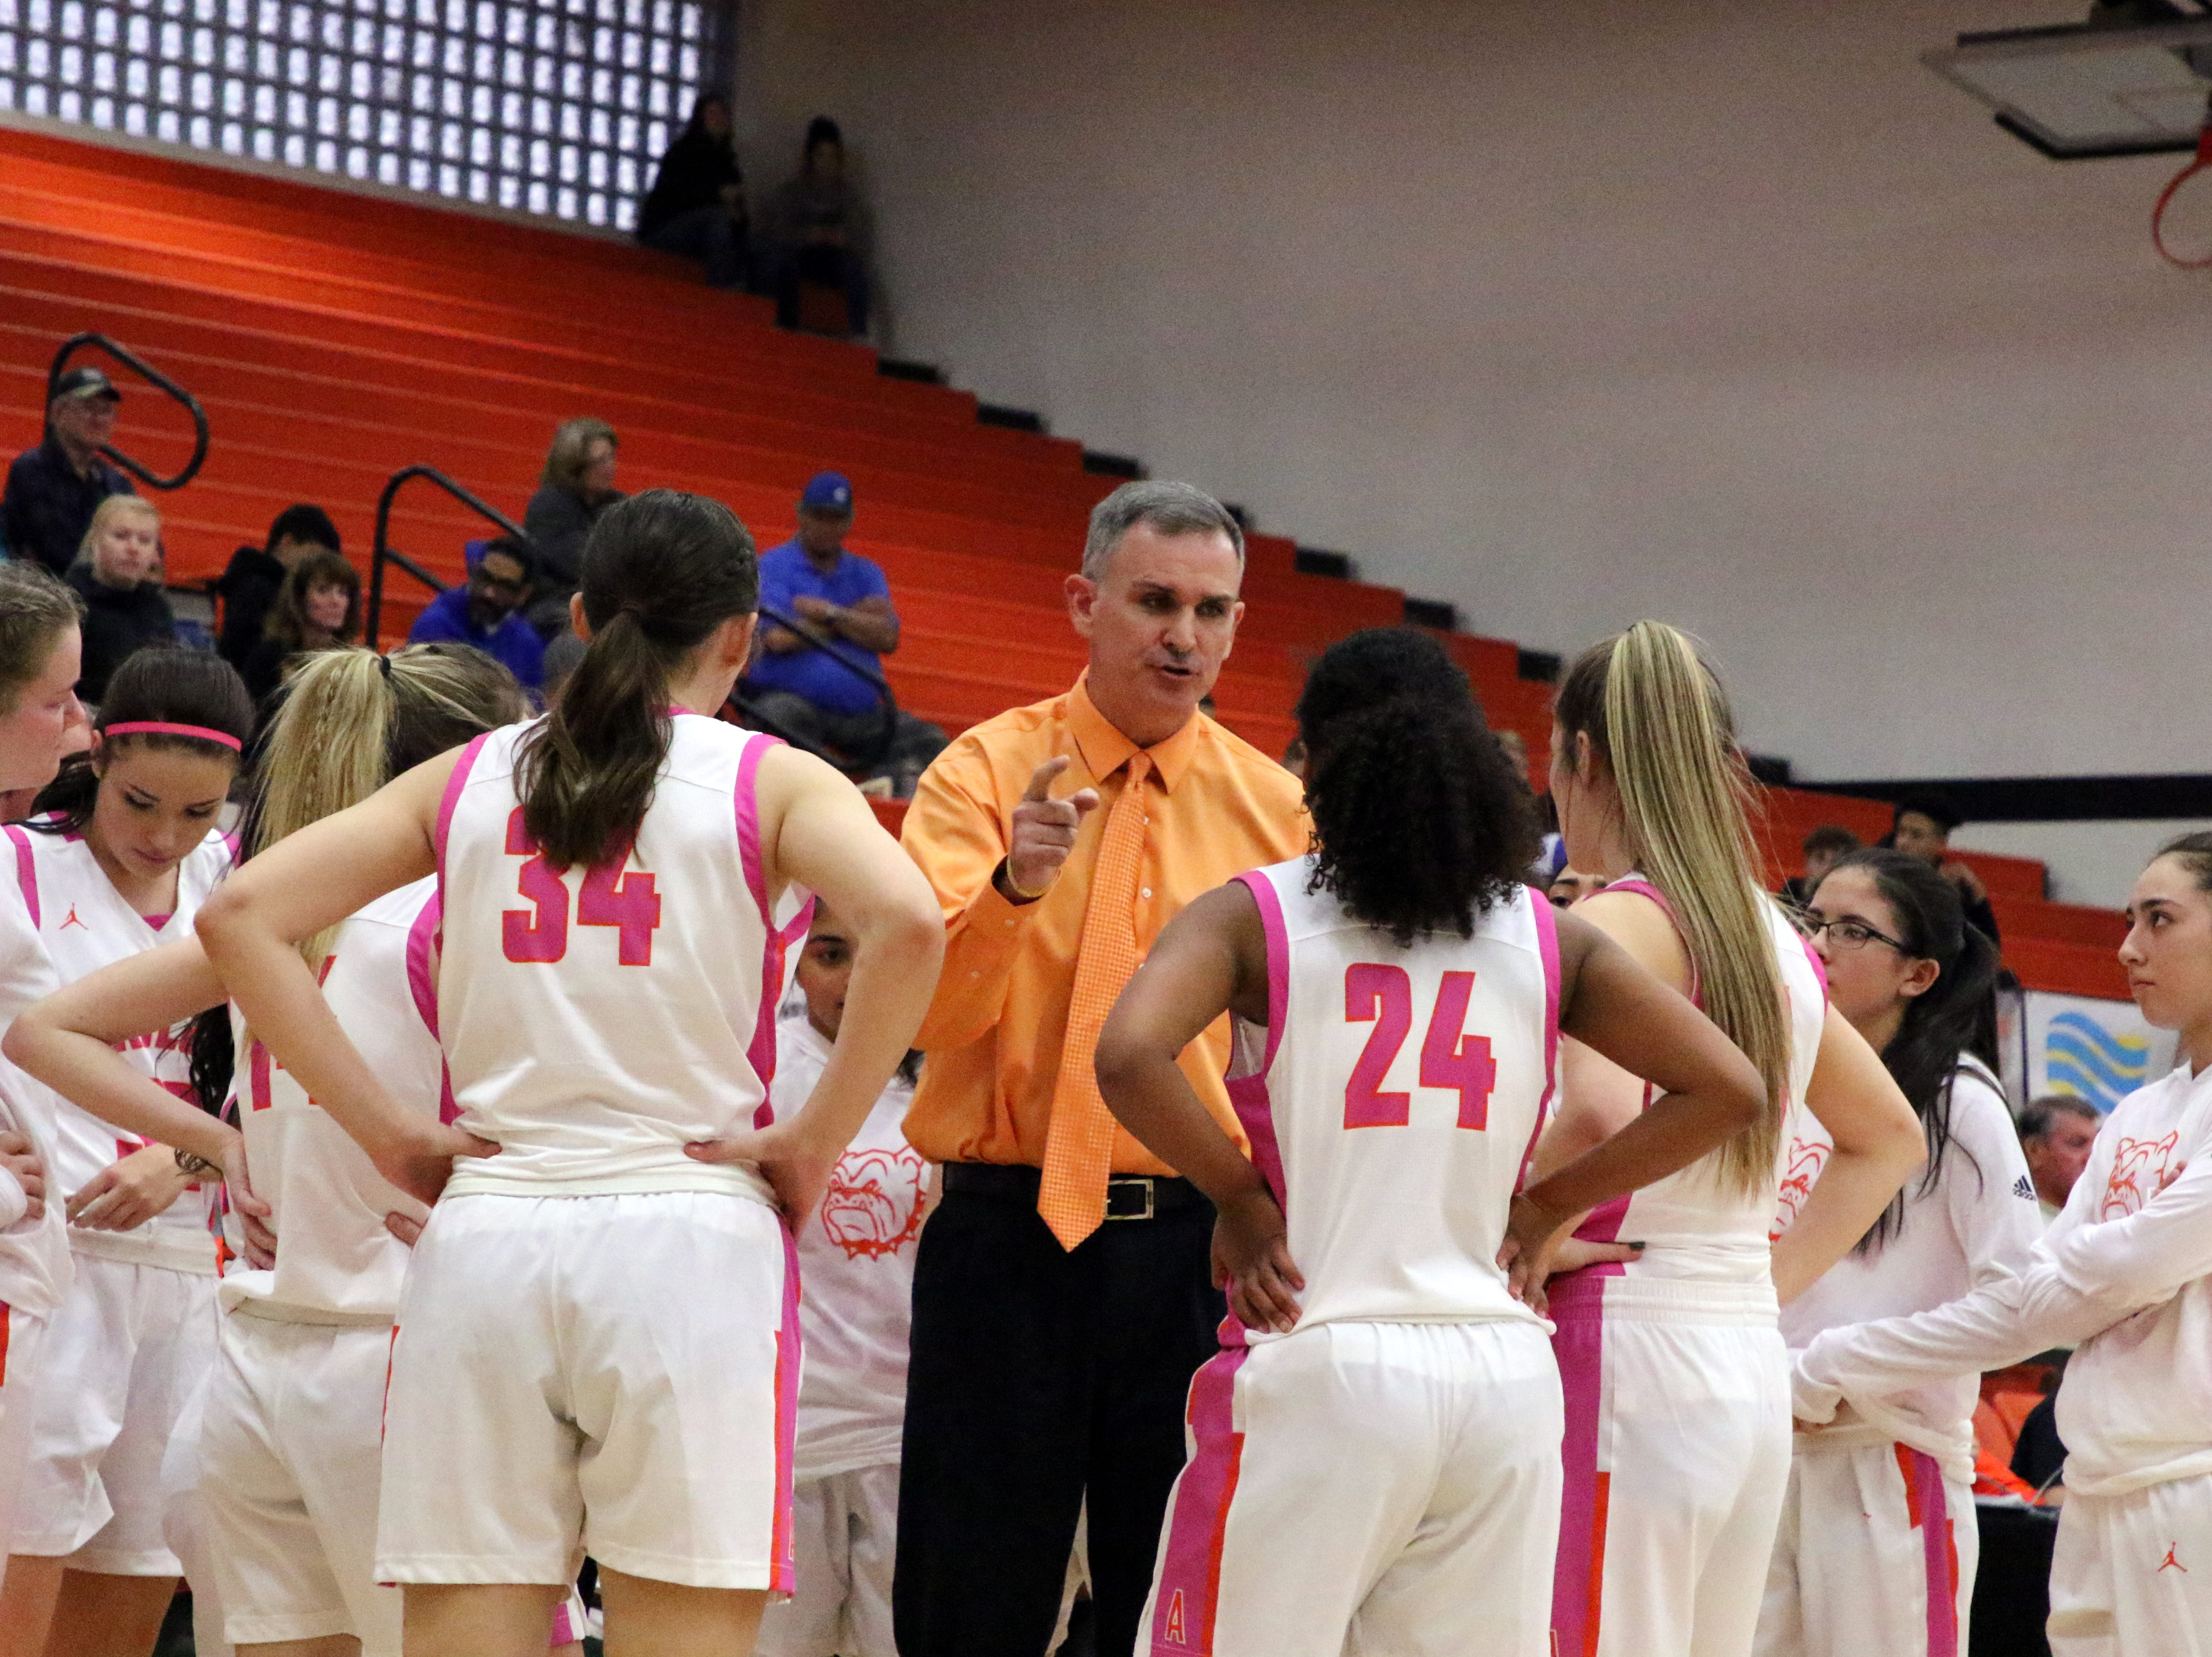 Artesia coach Jeff Houghtaling talks to his team during a first quarter timeout in Friday's game against Carlsbad.